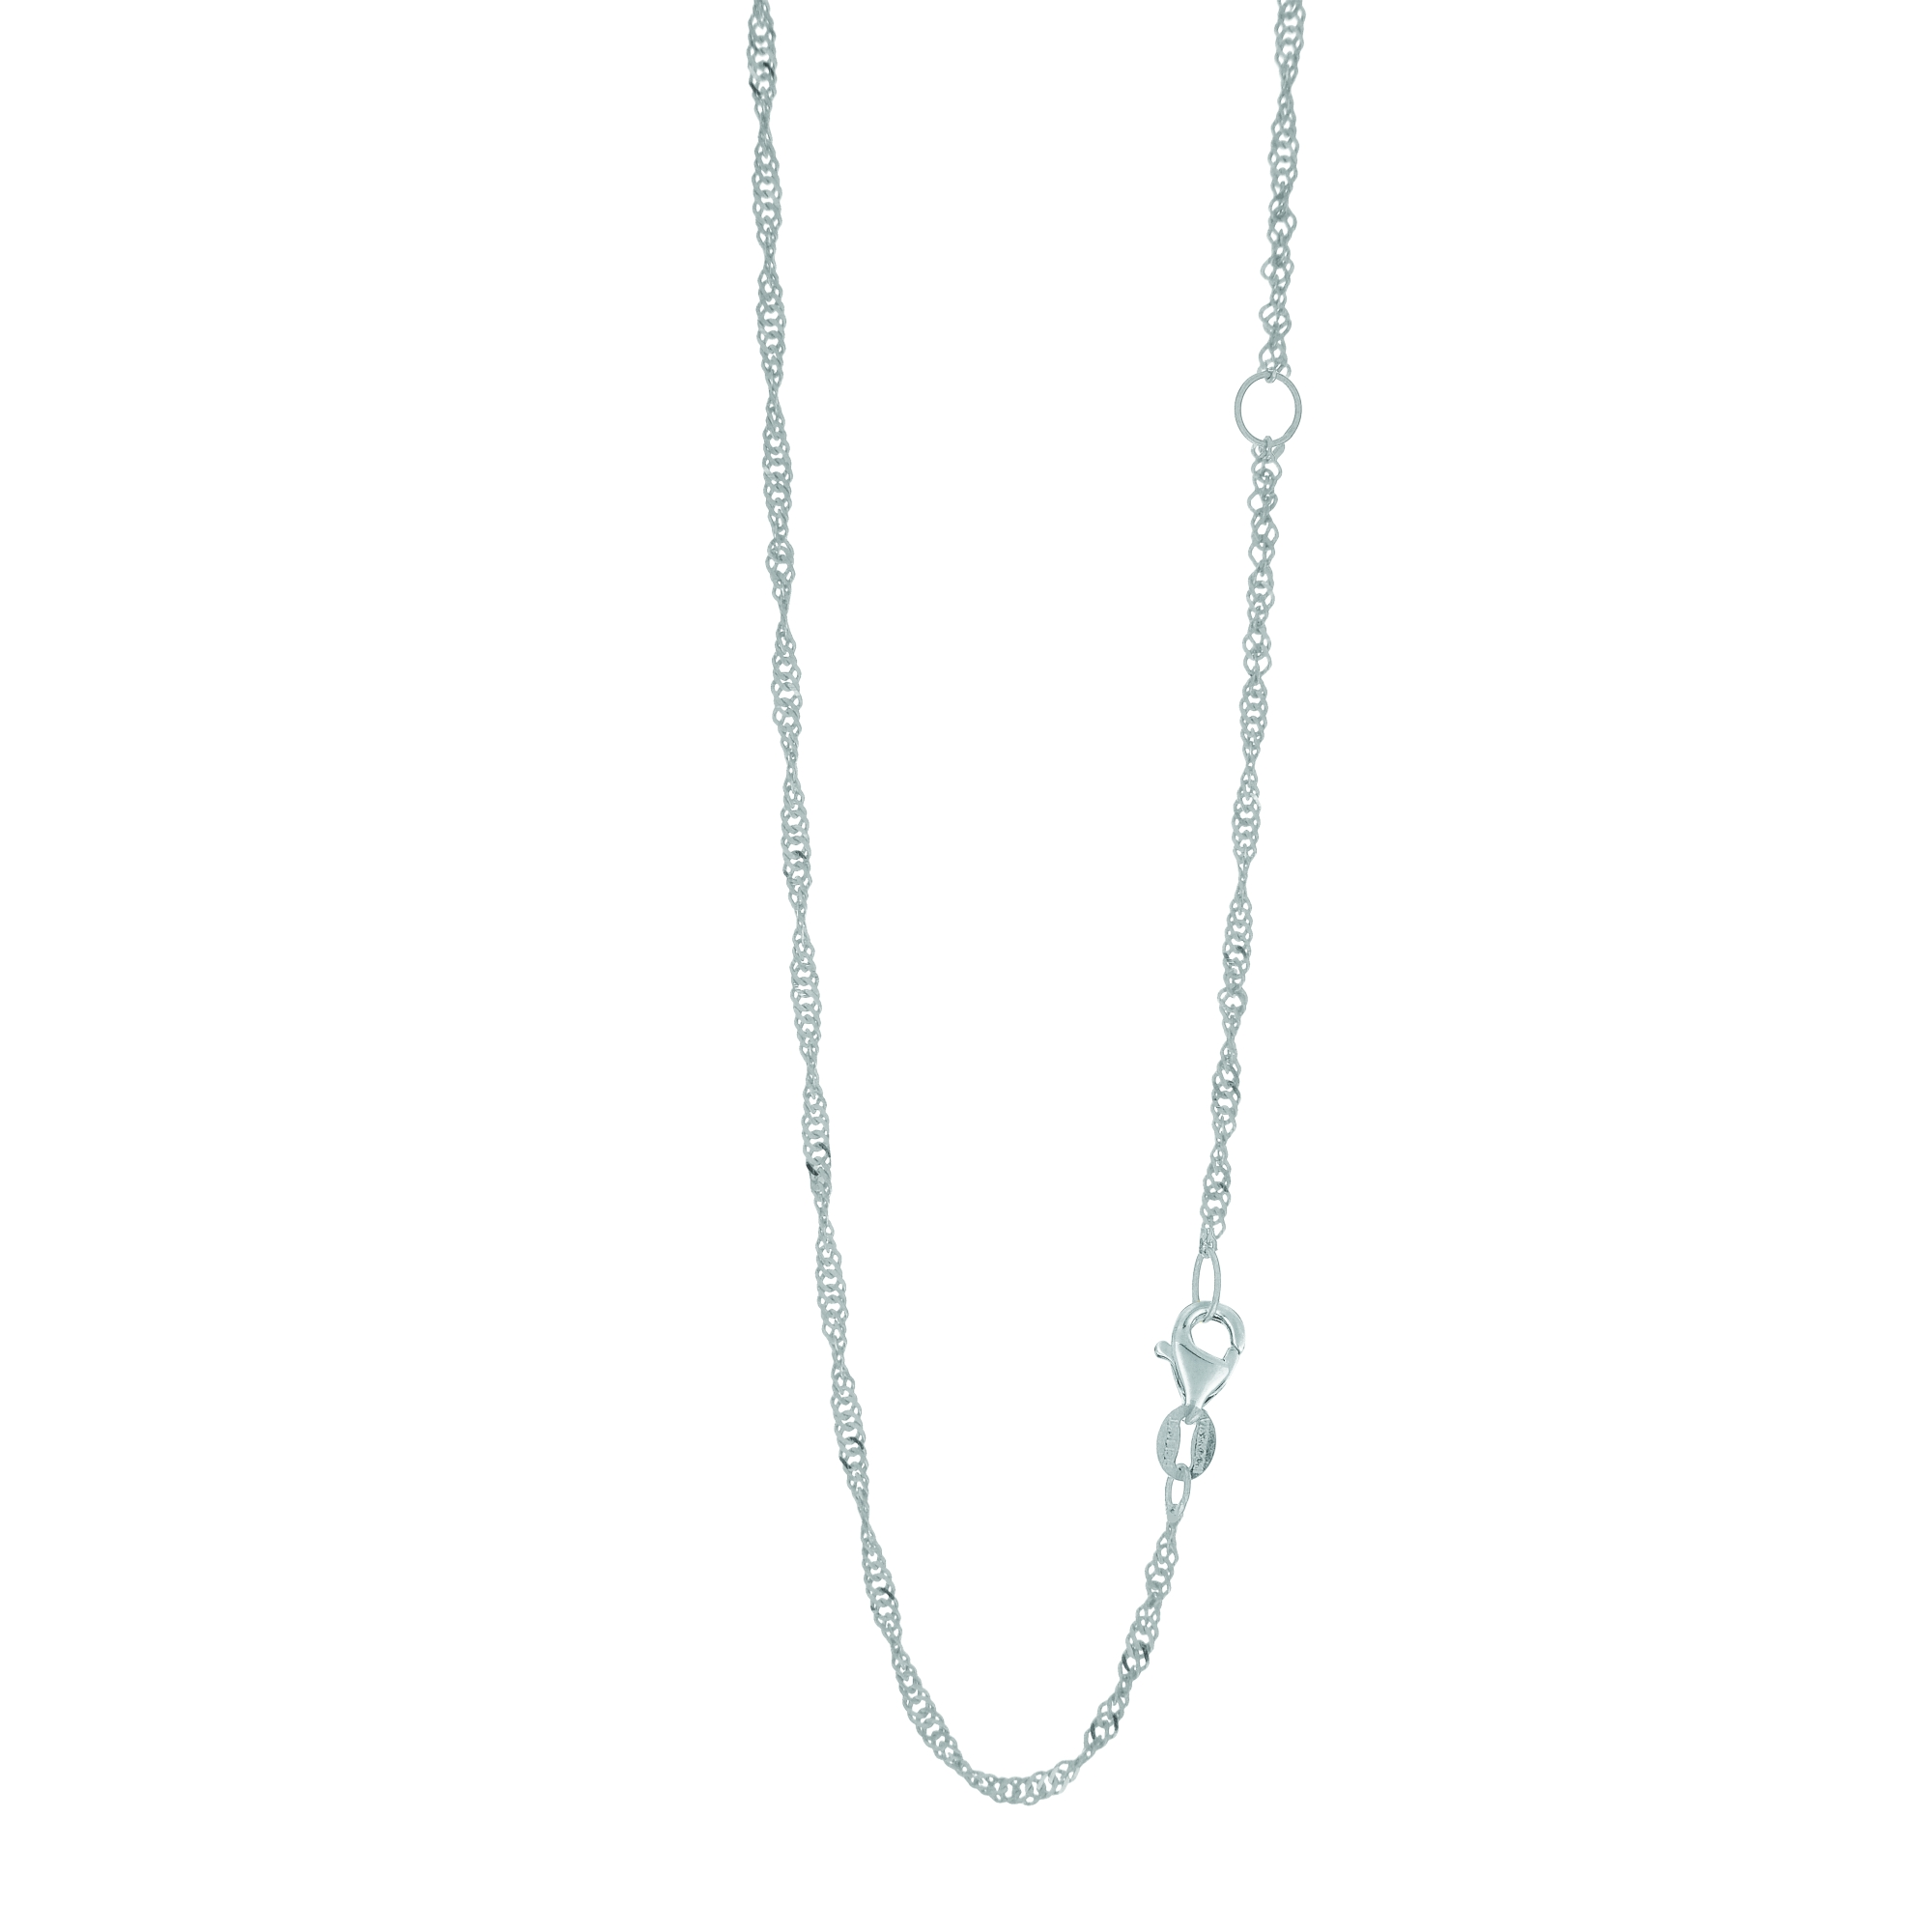 LUXURMAN Solid 14k Gold Singapore Chain For Women Extendable 1.7mm White Image